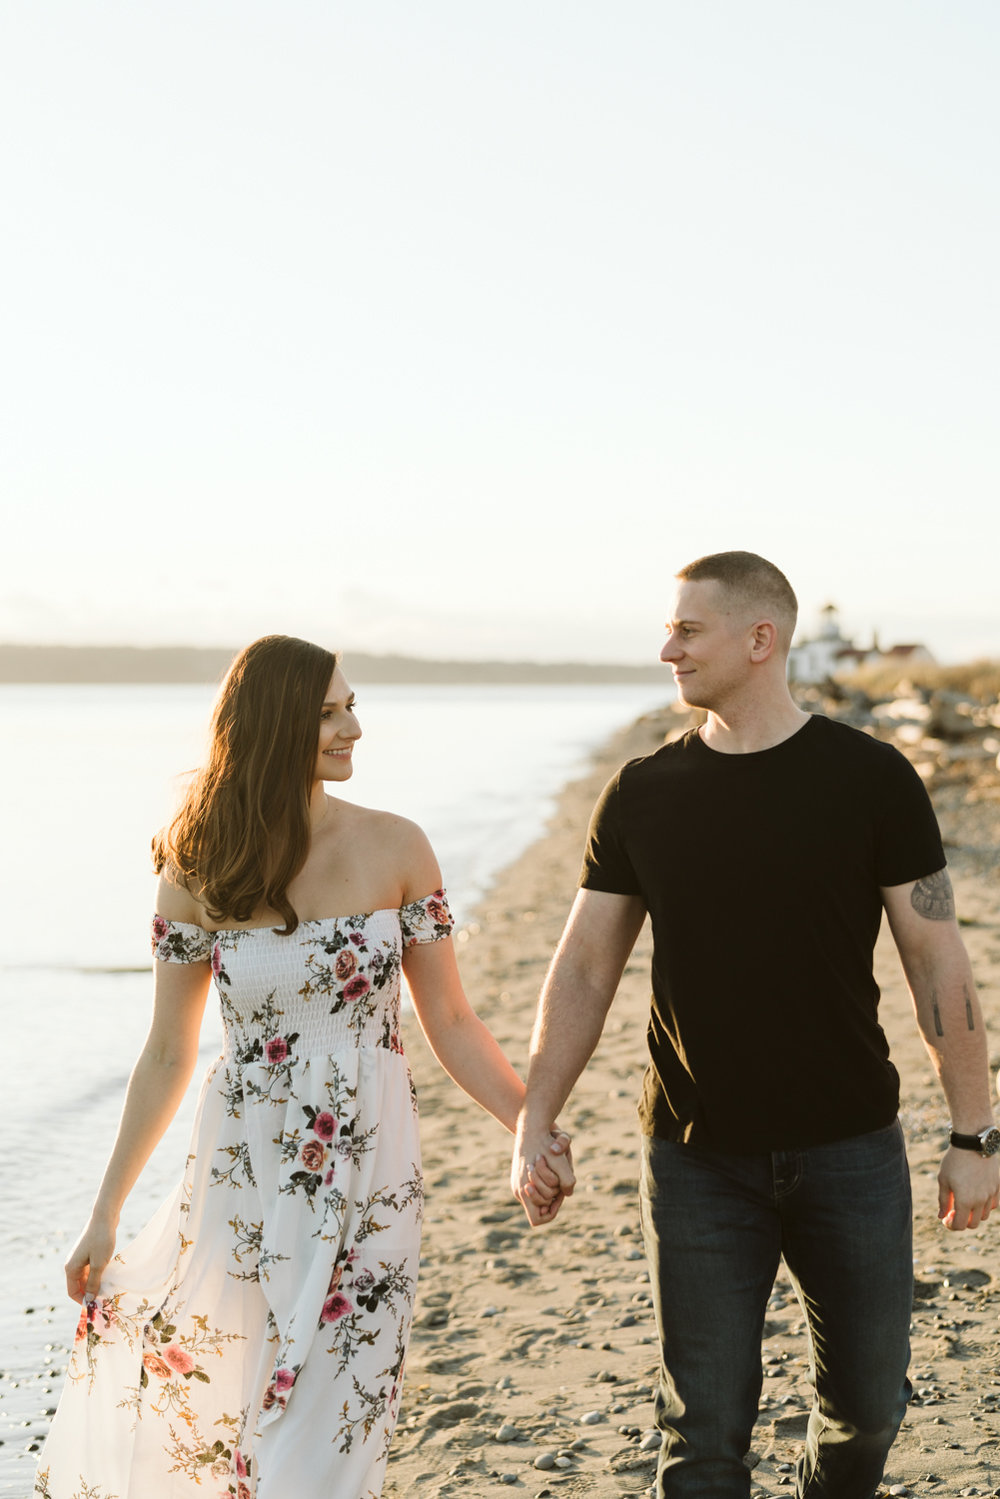 April Yentas Photography - Bonzai & Alex - Engagement Session-72.jpg